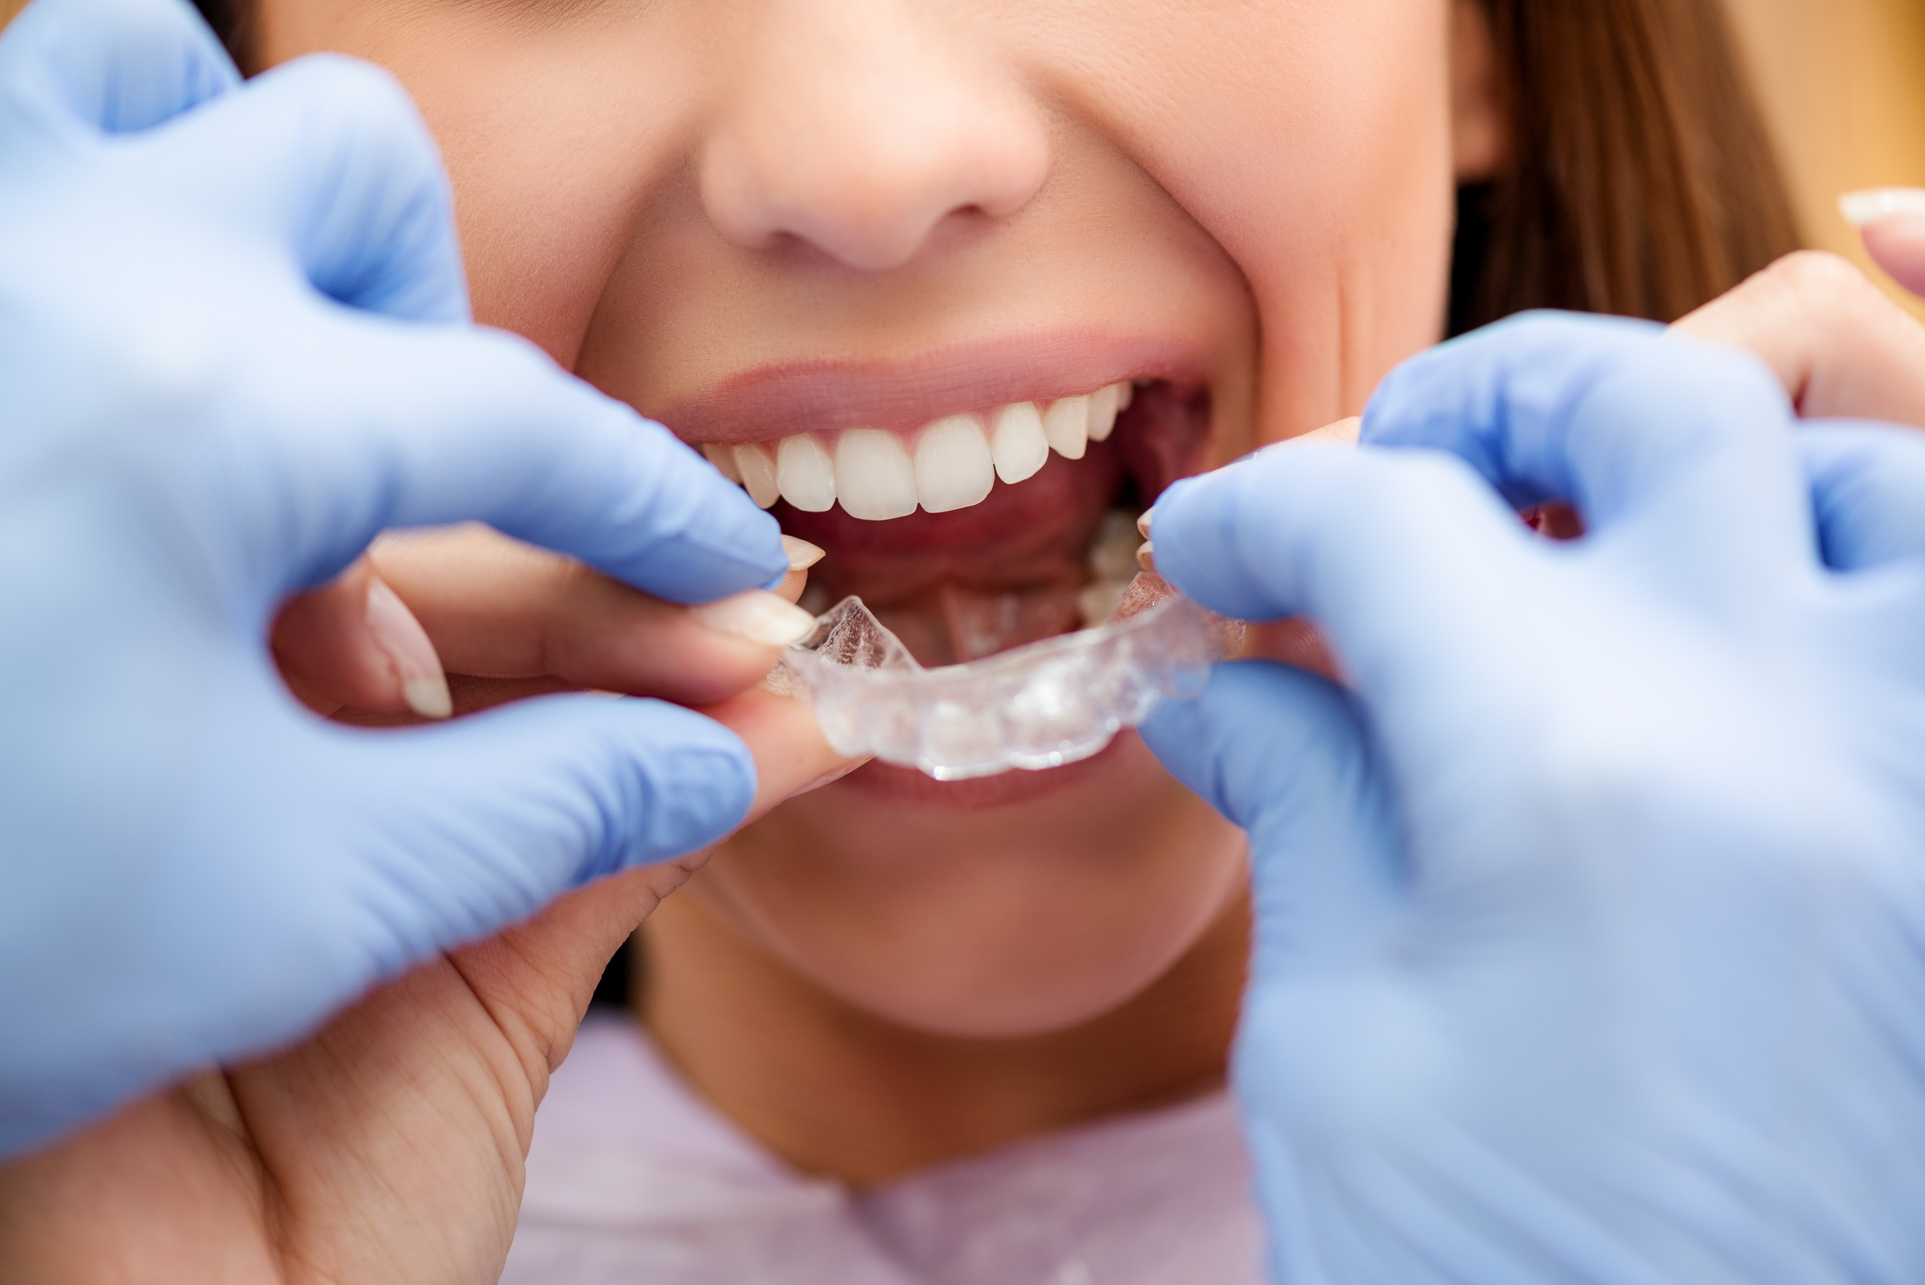 Dentist putting on clear braces for patient